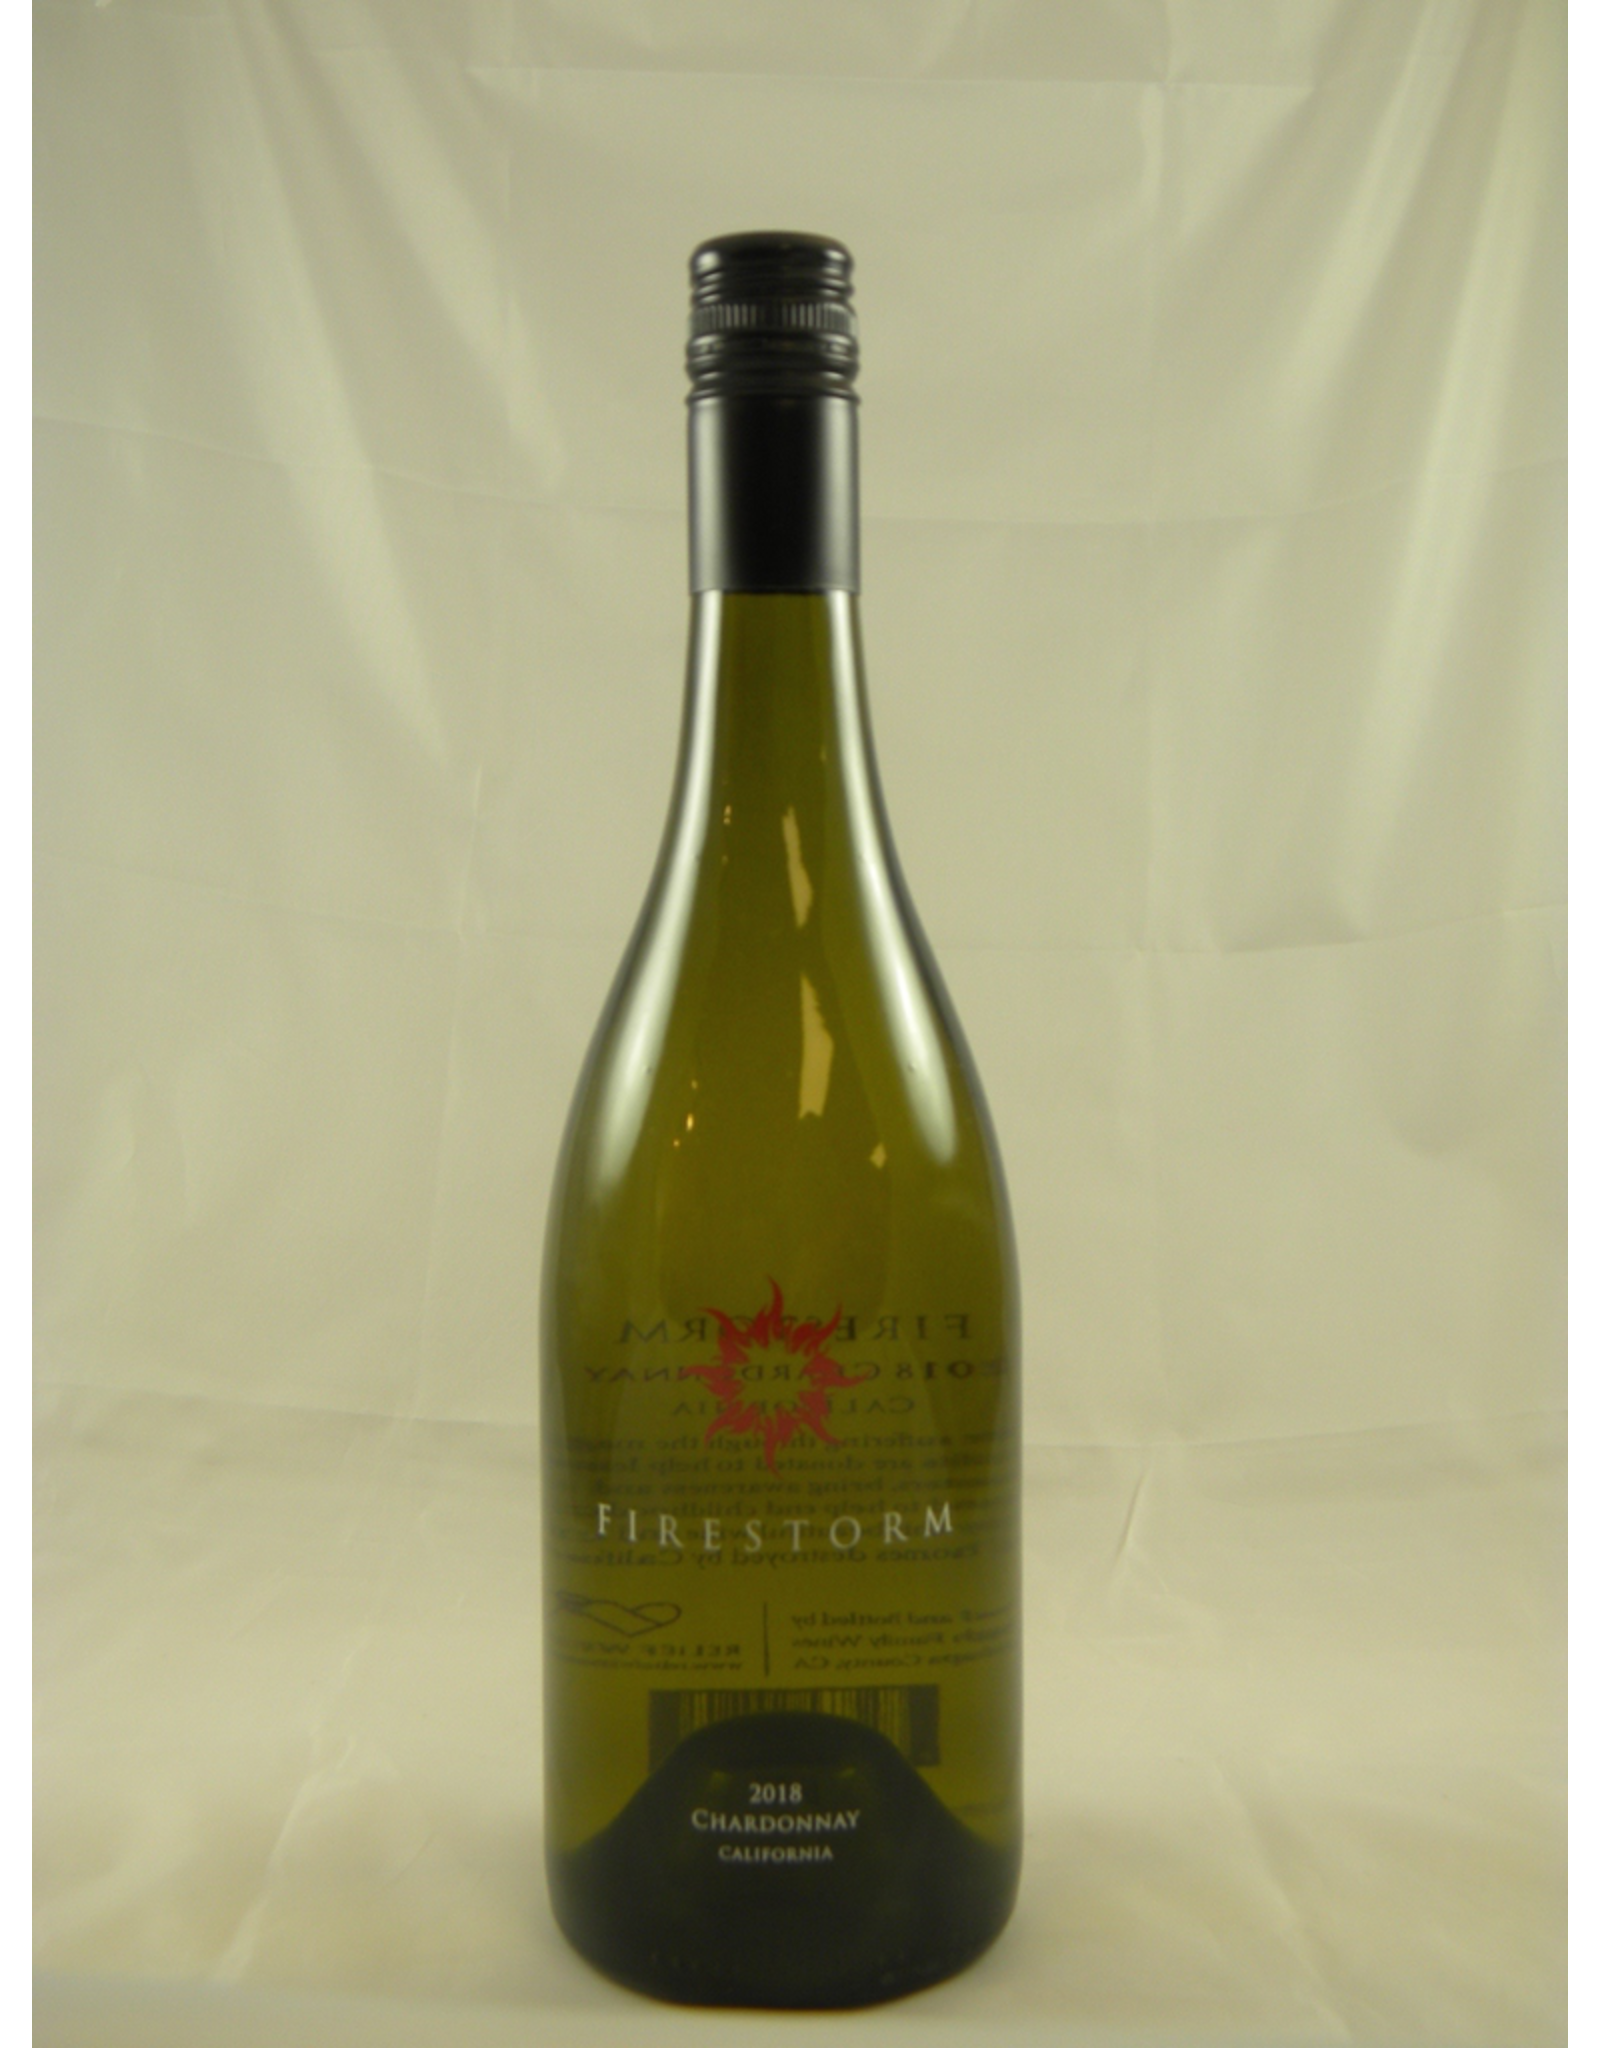 Firestorm Chardonnay California 2018